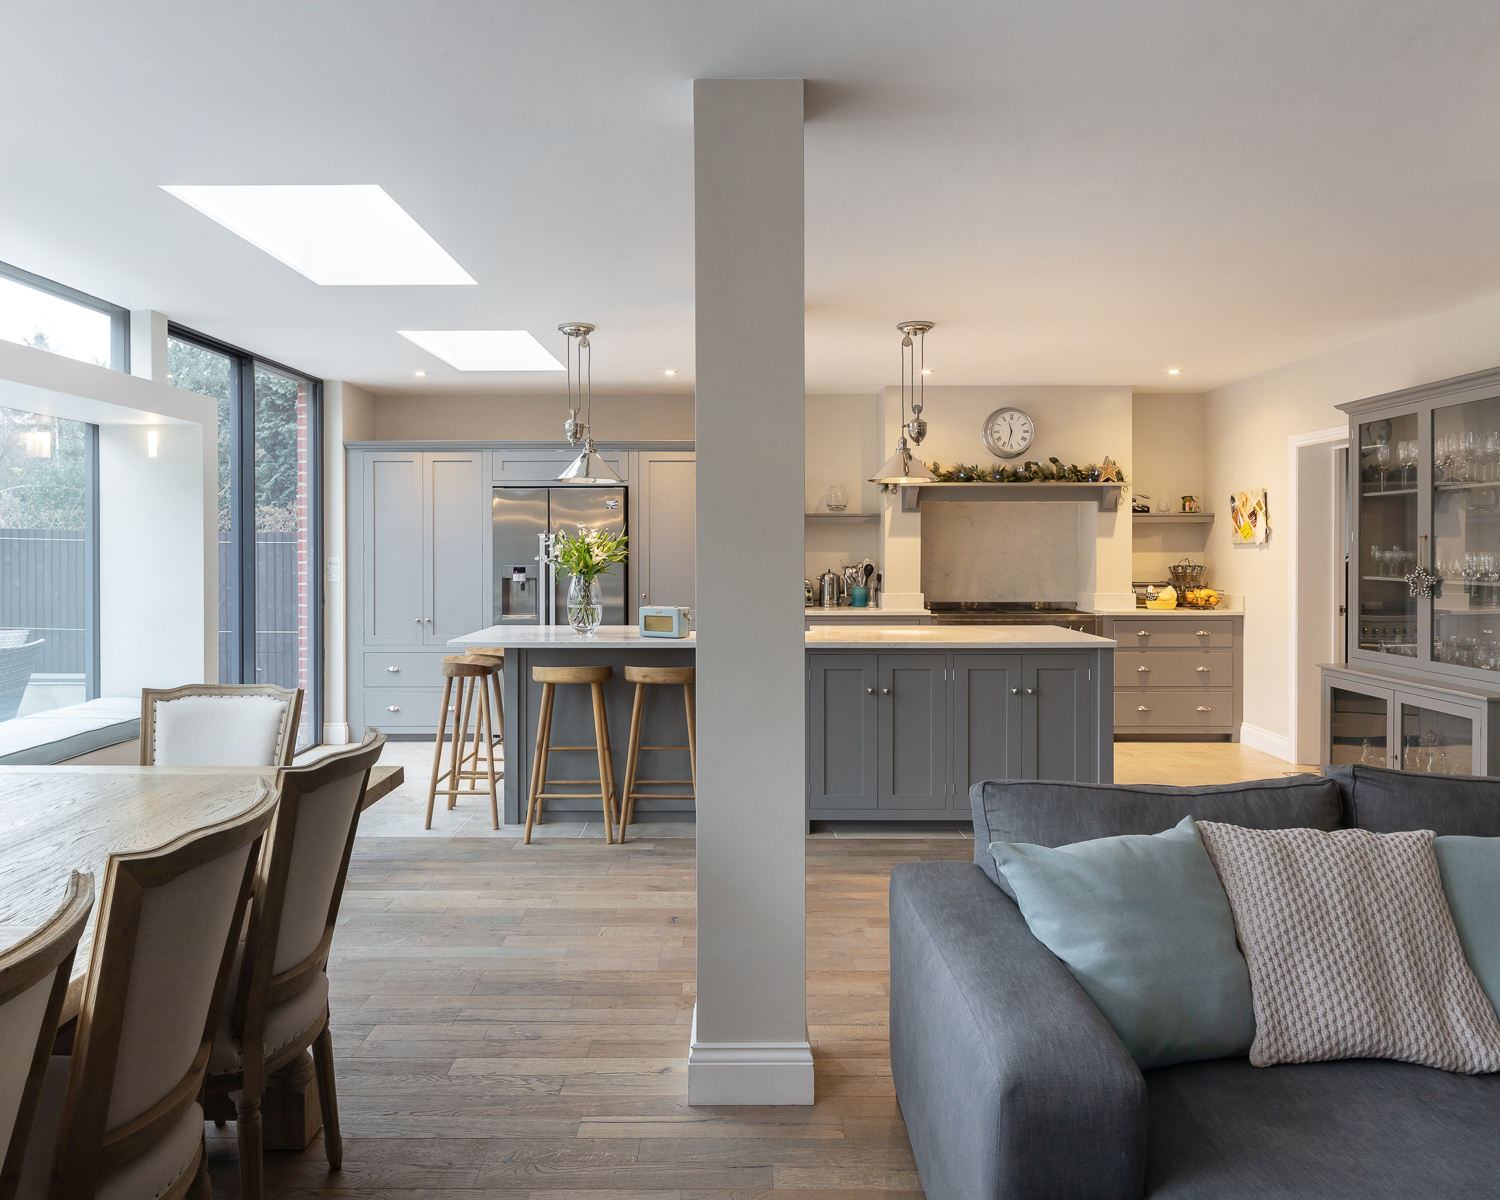 St Albans House kitchen and living room